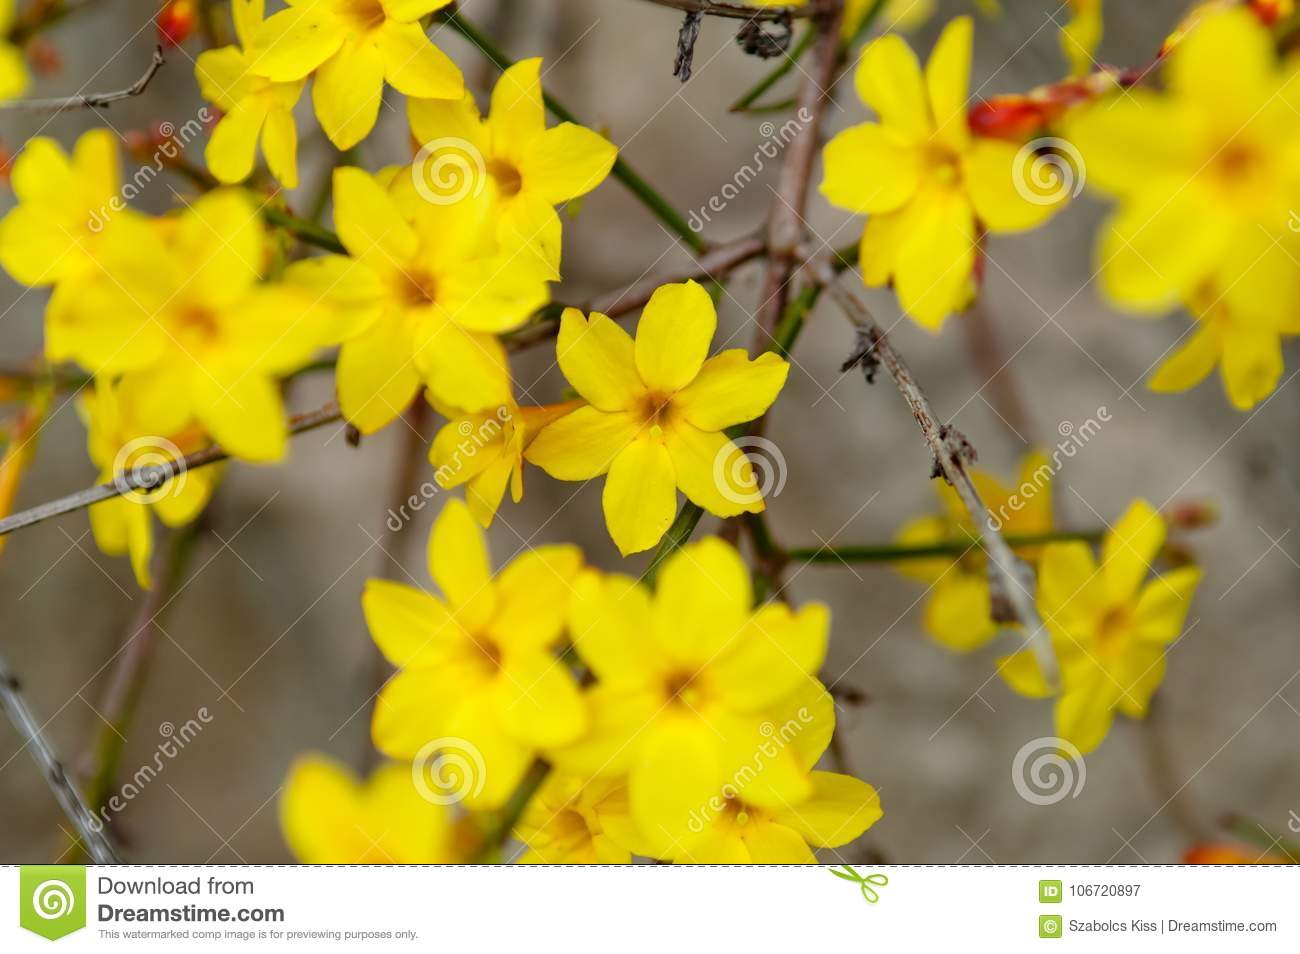 Winter jasmine jasminum nudiflorum yellow flower stock image image winter jasmine jasminum nudiflorum yellow flower izmirmasajfo